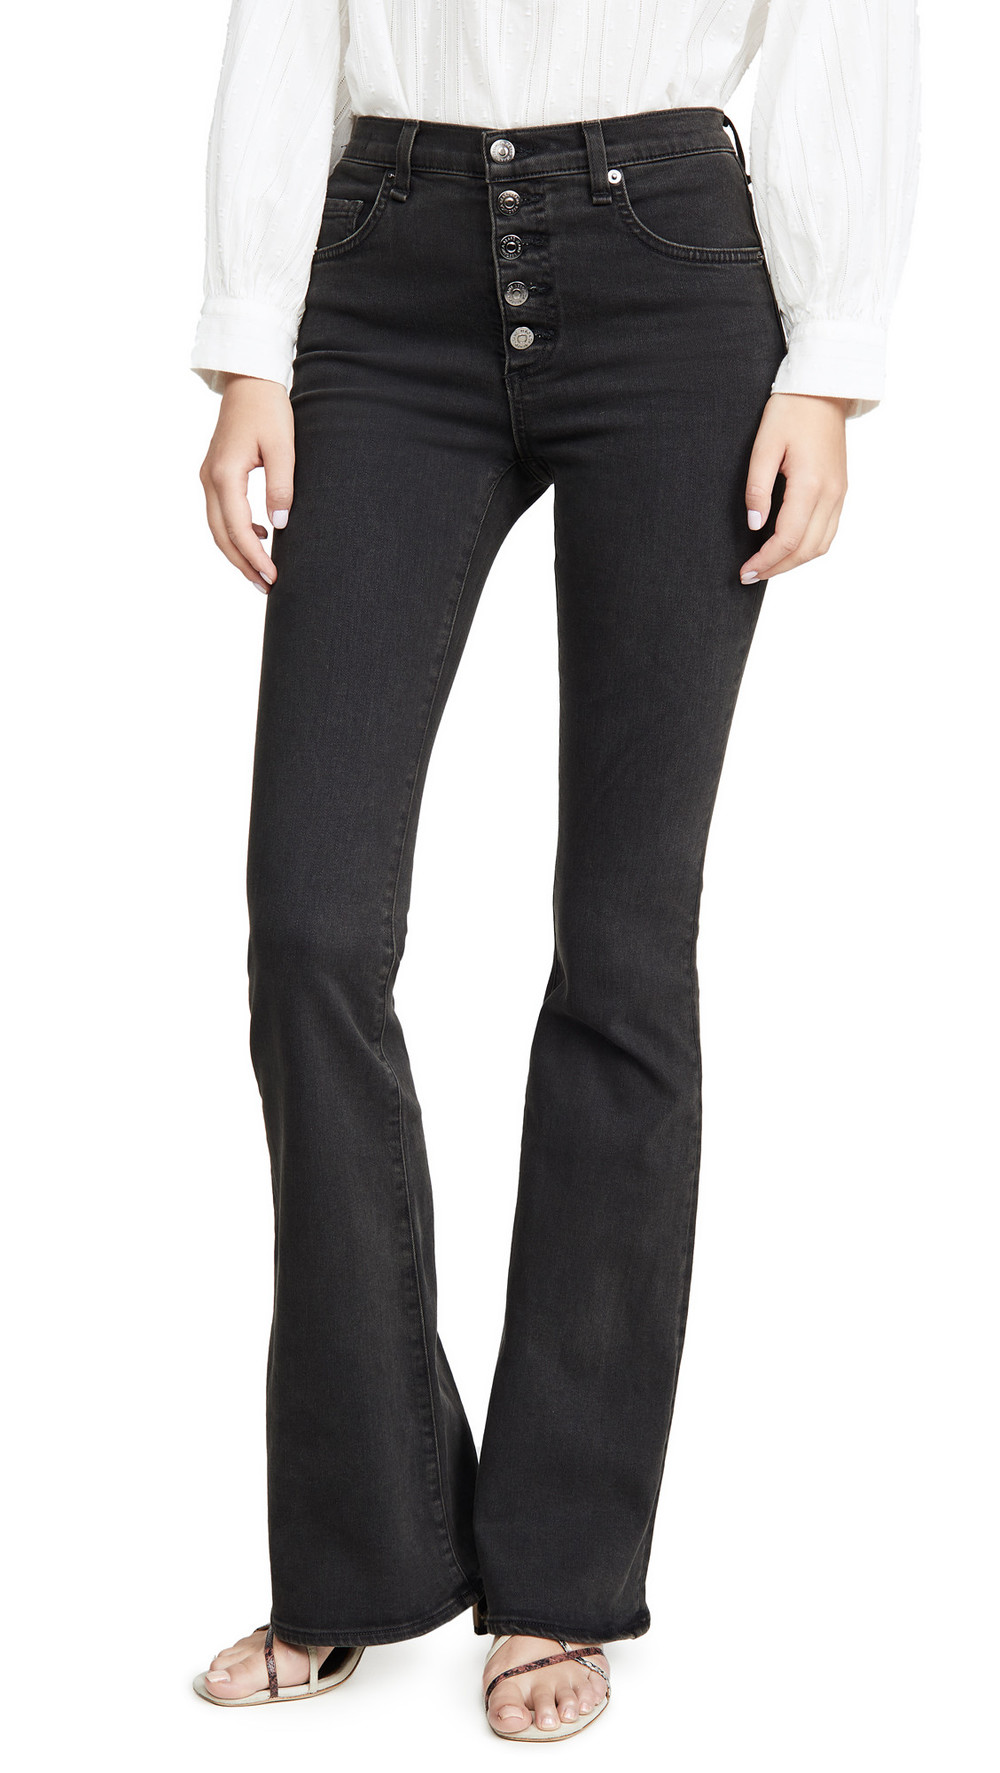 Veronica Beard Jean Beverly High Rise Skinny Flare Jeans in charcoal